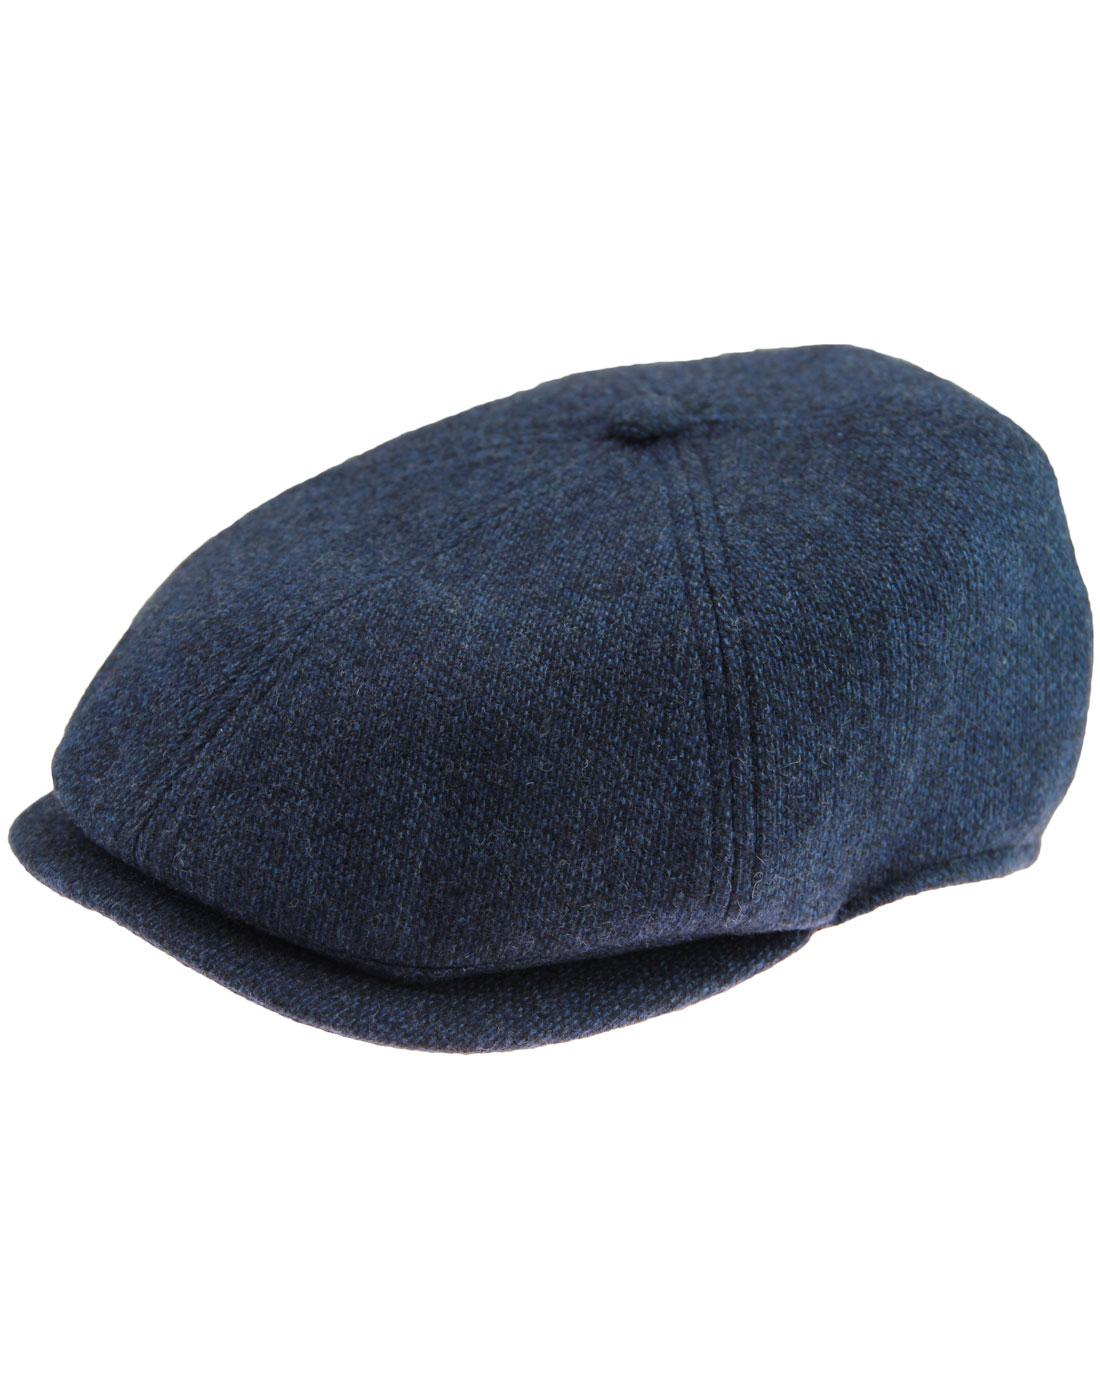 Hudson FAILSWORTH Abraham Moon Spitfire Cap BLUE